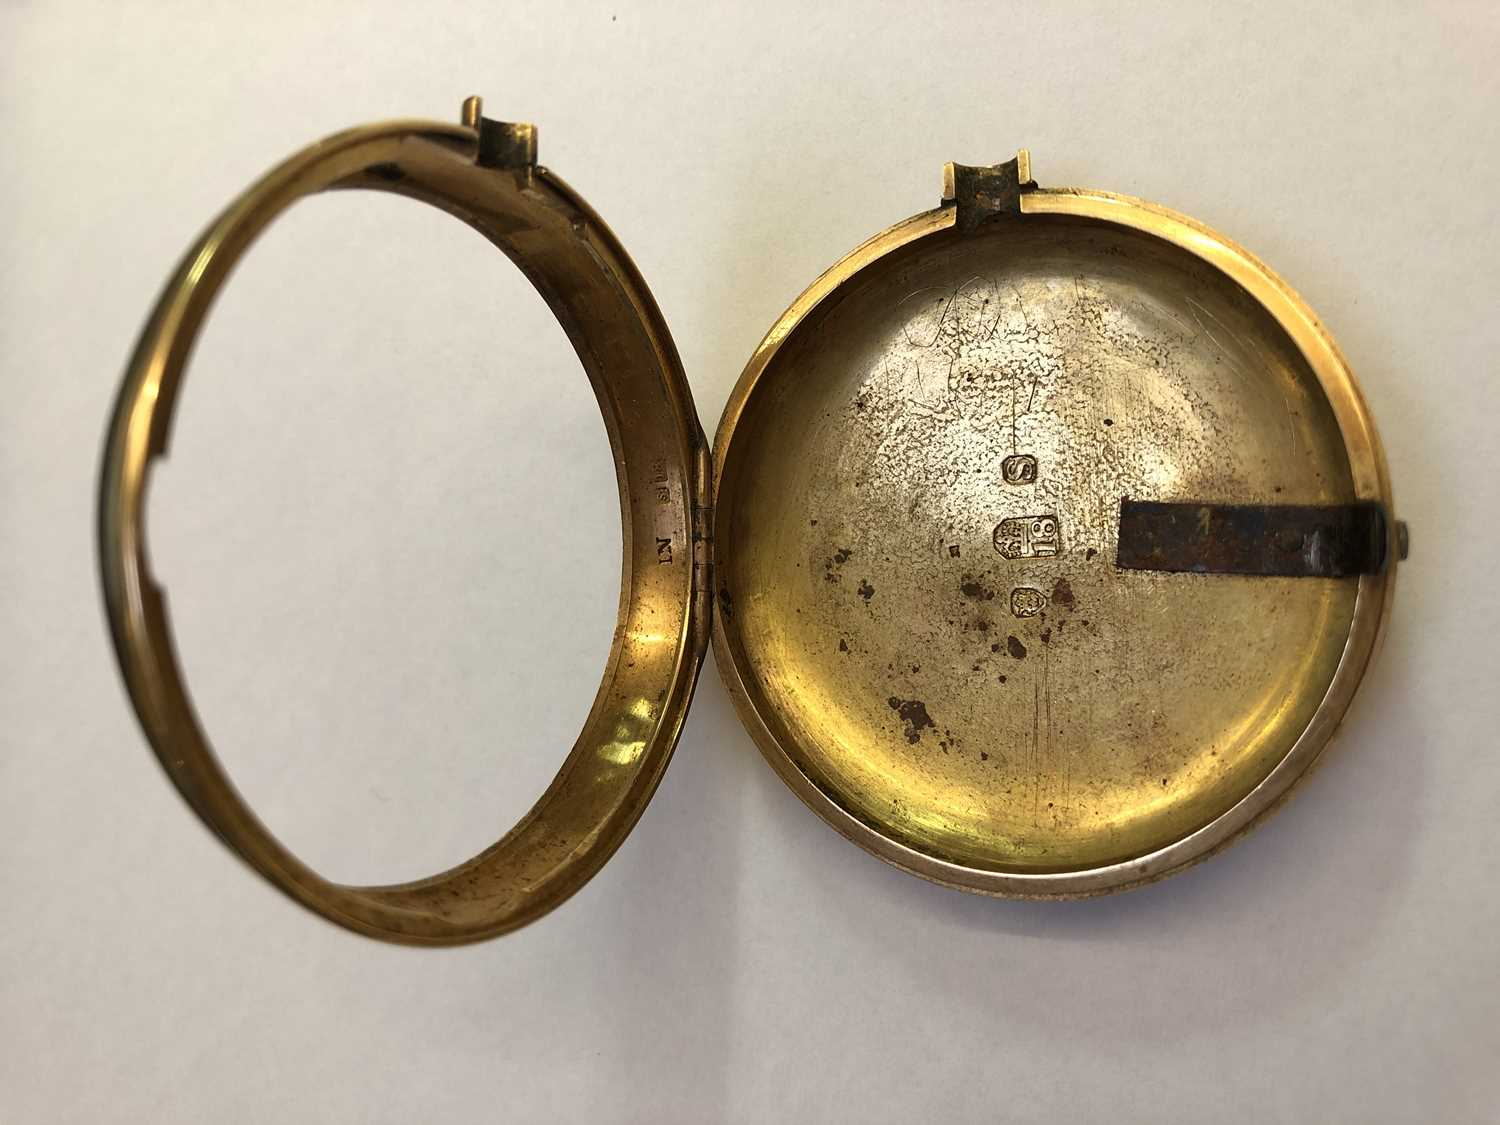 A George III 18ct gold pair case pocket watch, the circular white enamel dial with Roman numerals, - Image 12 of 14